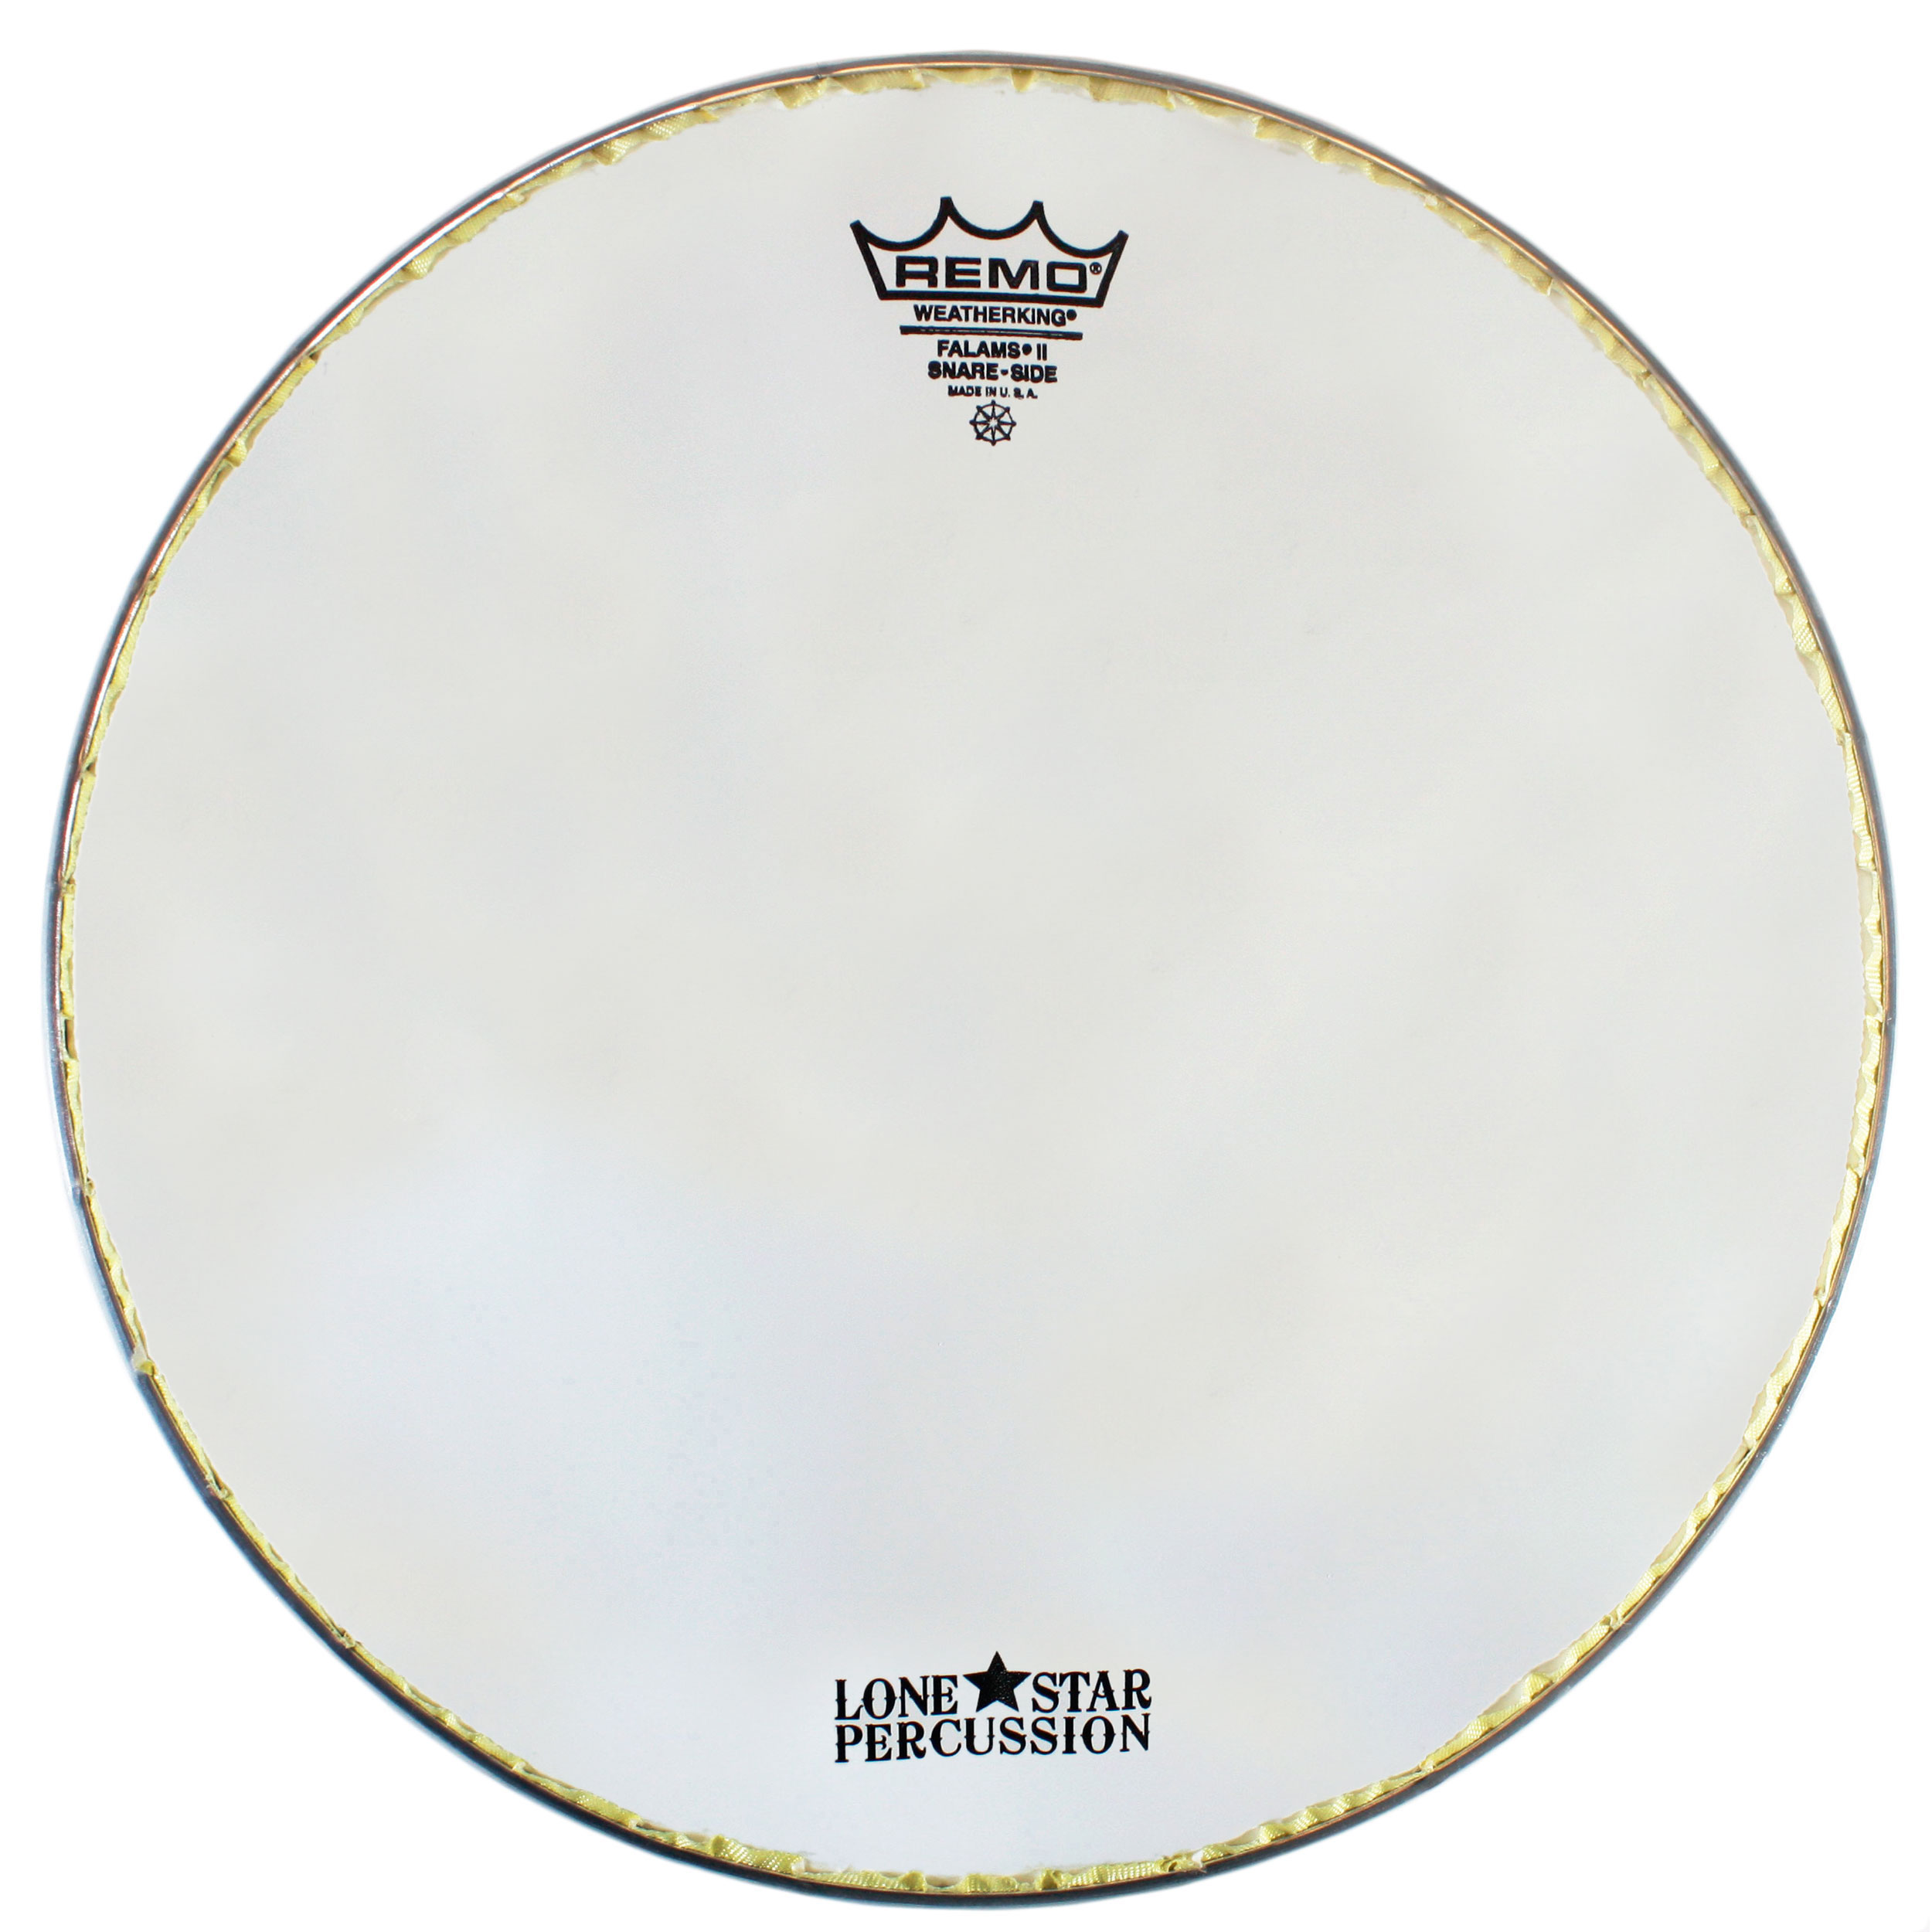 "Remo 14"" Falams Marching Snare Side (Bottom) Drum Head"